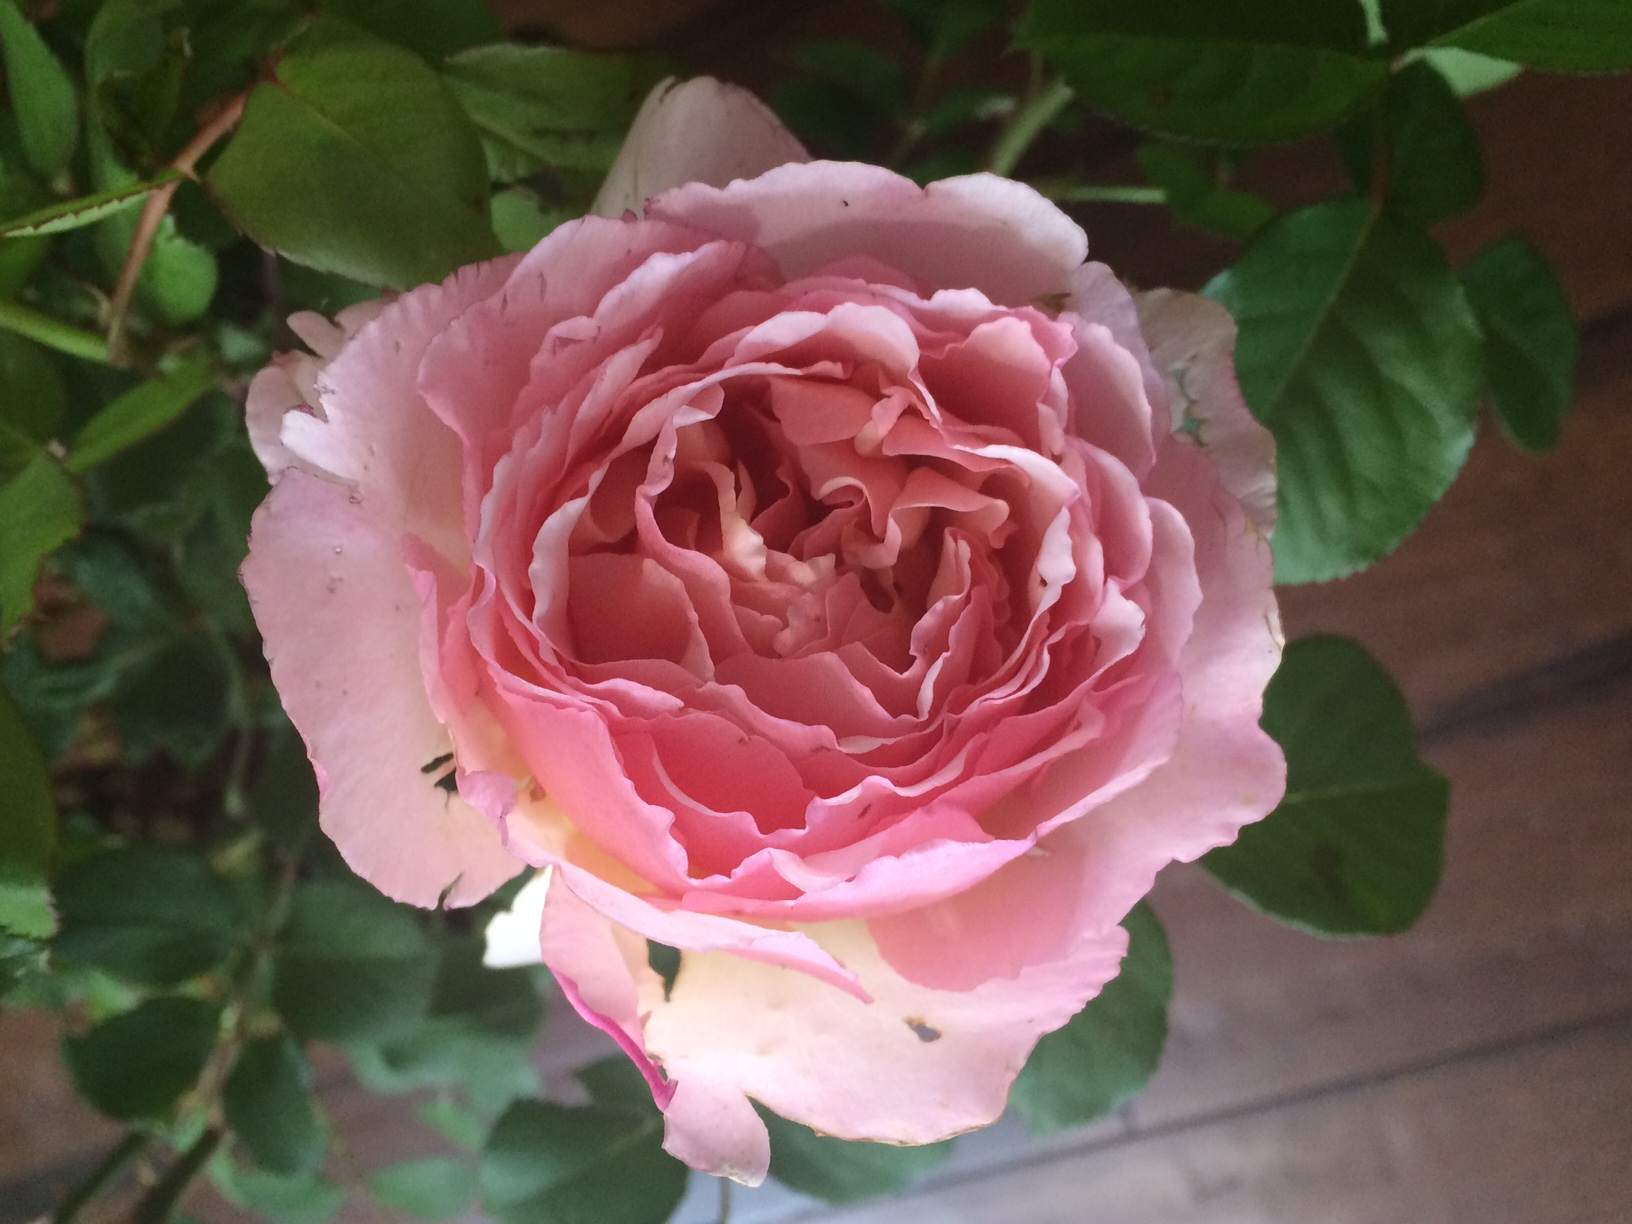 For moms: A perfect time for roses – The Buffalo News